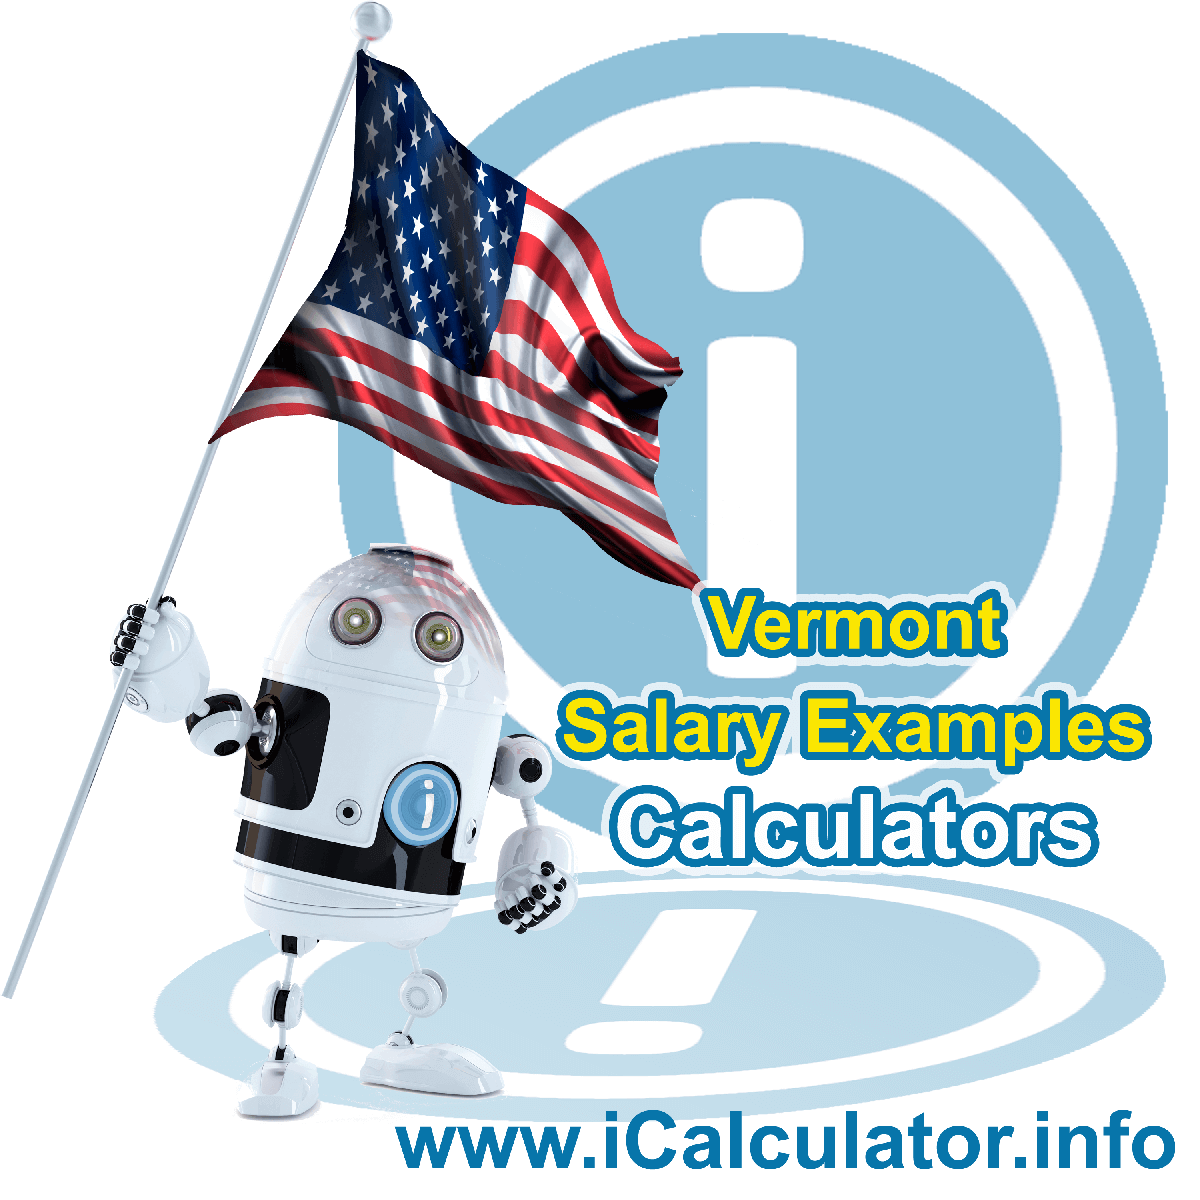 Vermont Salary Example for $205,000.00 in 2020 | iCalculator | $205,000.00 salary example for employee and employer paying Vermont State tincome taxes. Detailed salary after tax calculation including Vermont State Tax, Federal State Tax, Medicare Deductions, Social Security, Capital Gains and other income tax and salary deductions complete with supporting Vermont state tax tables